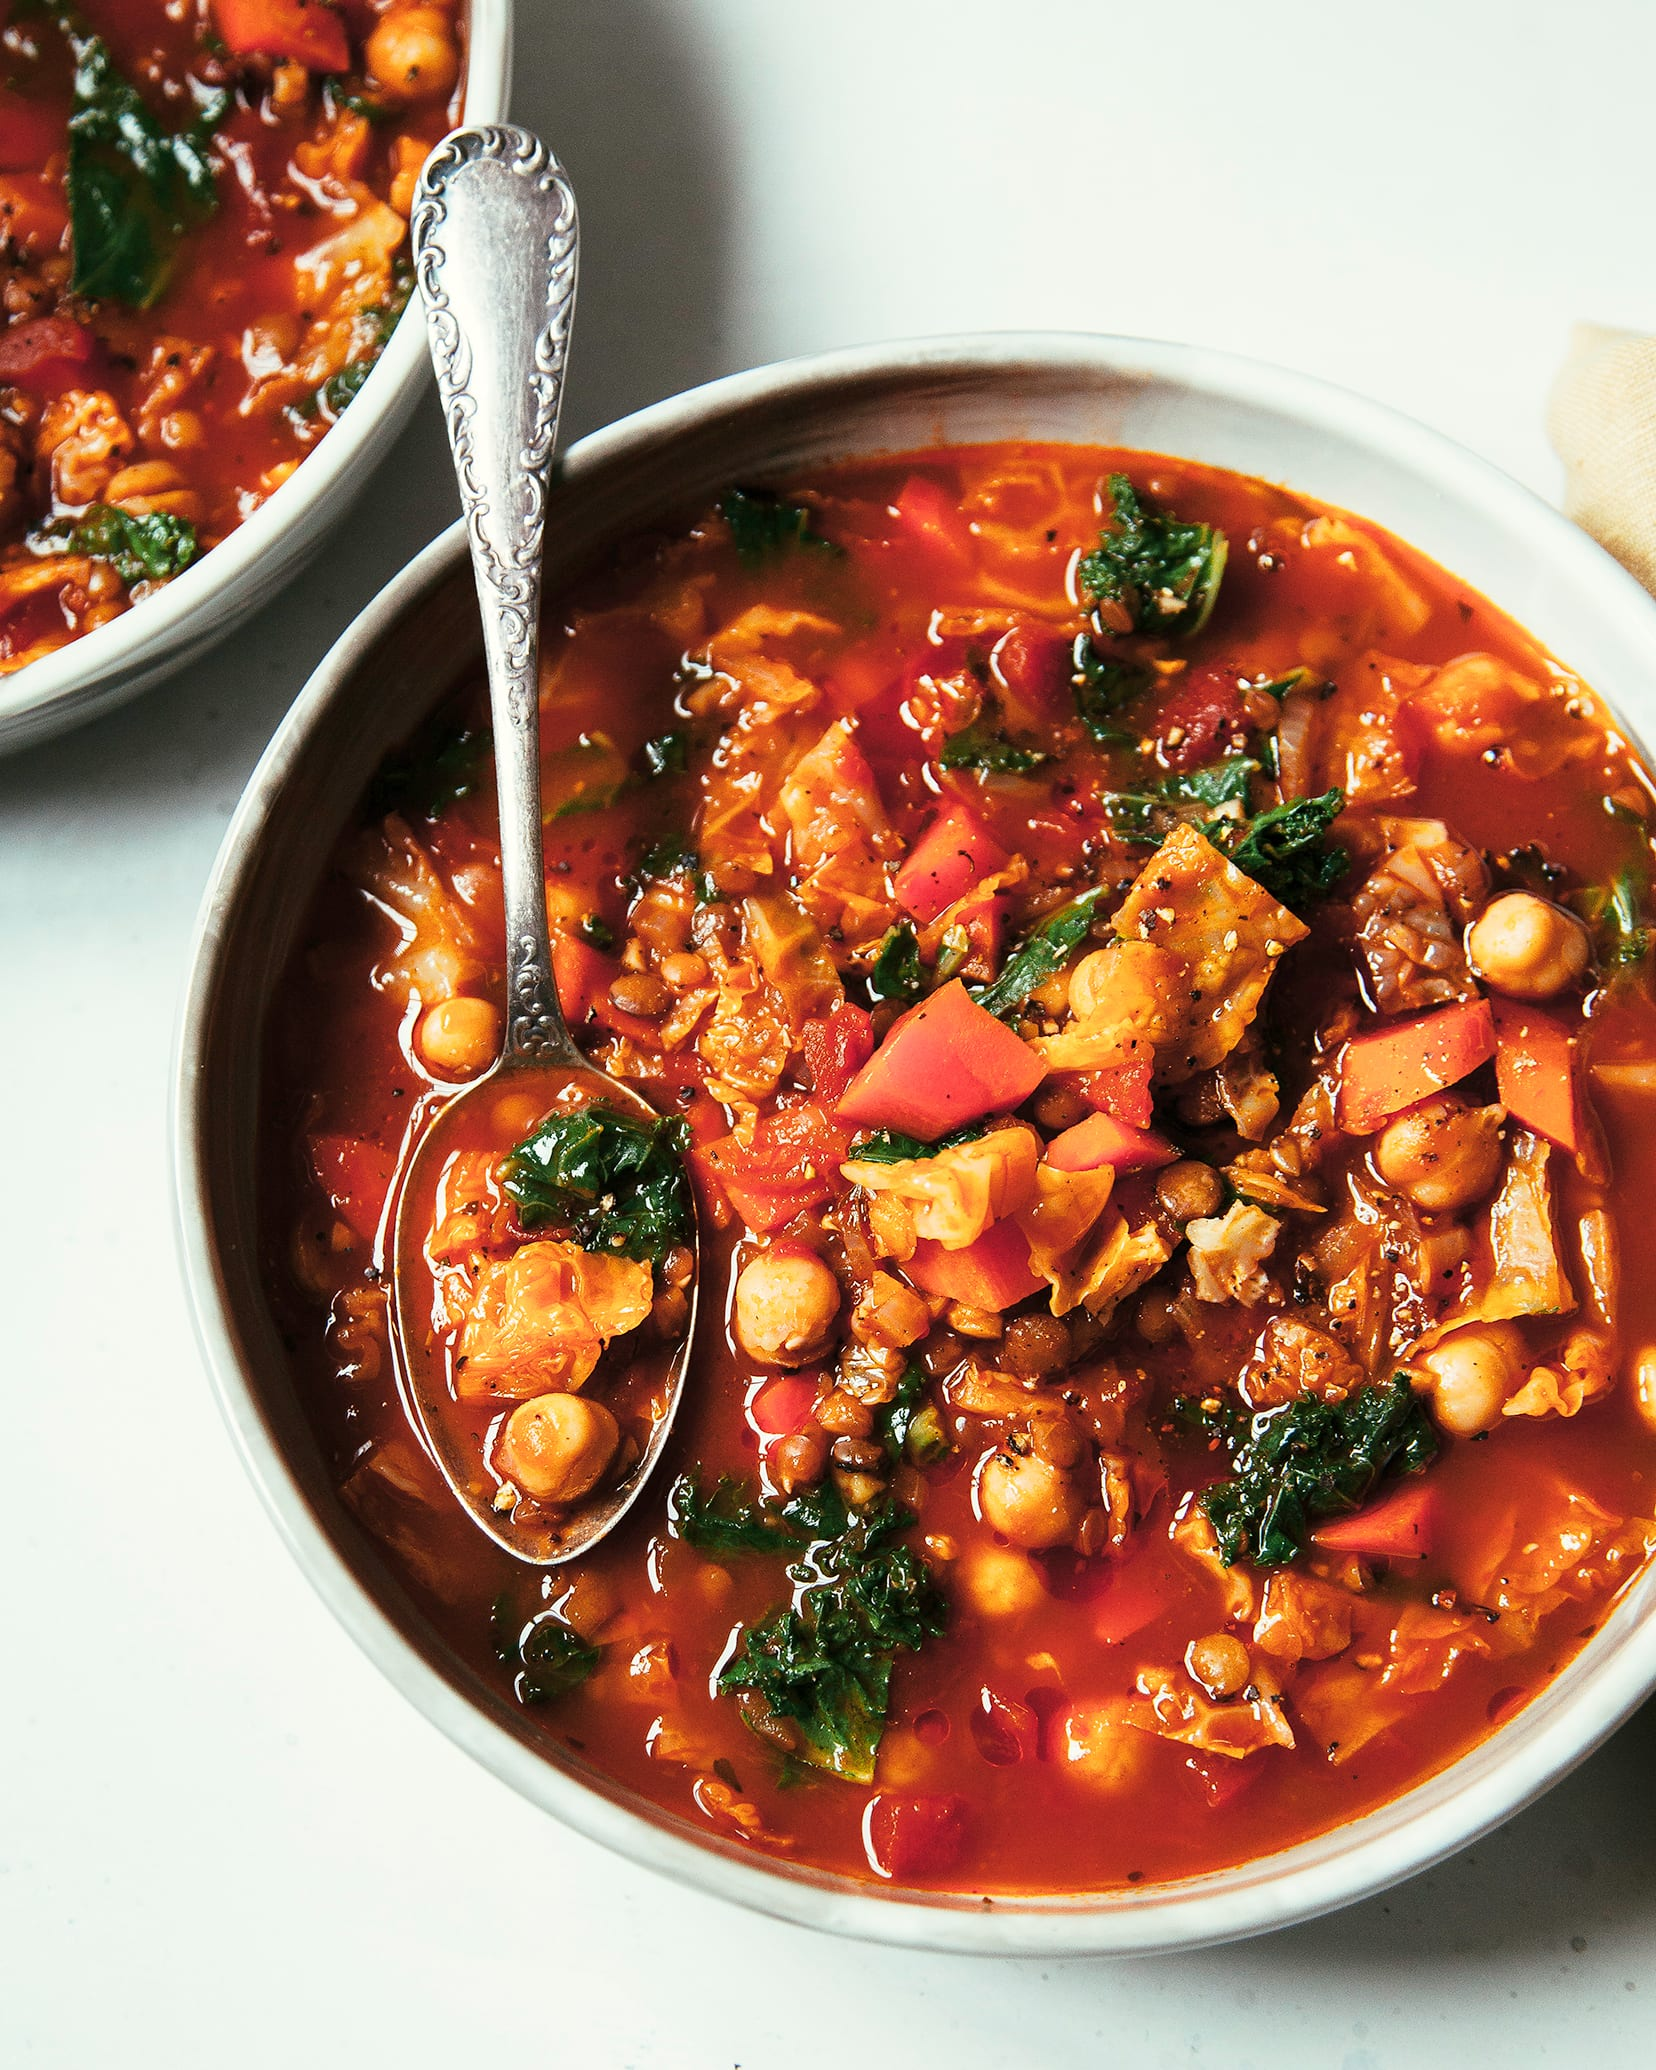 Smoky Chickpea Cabbage Lentil Stew With Kale The First Mess